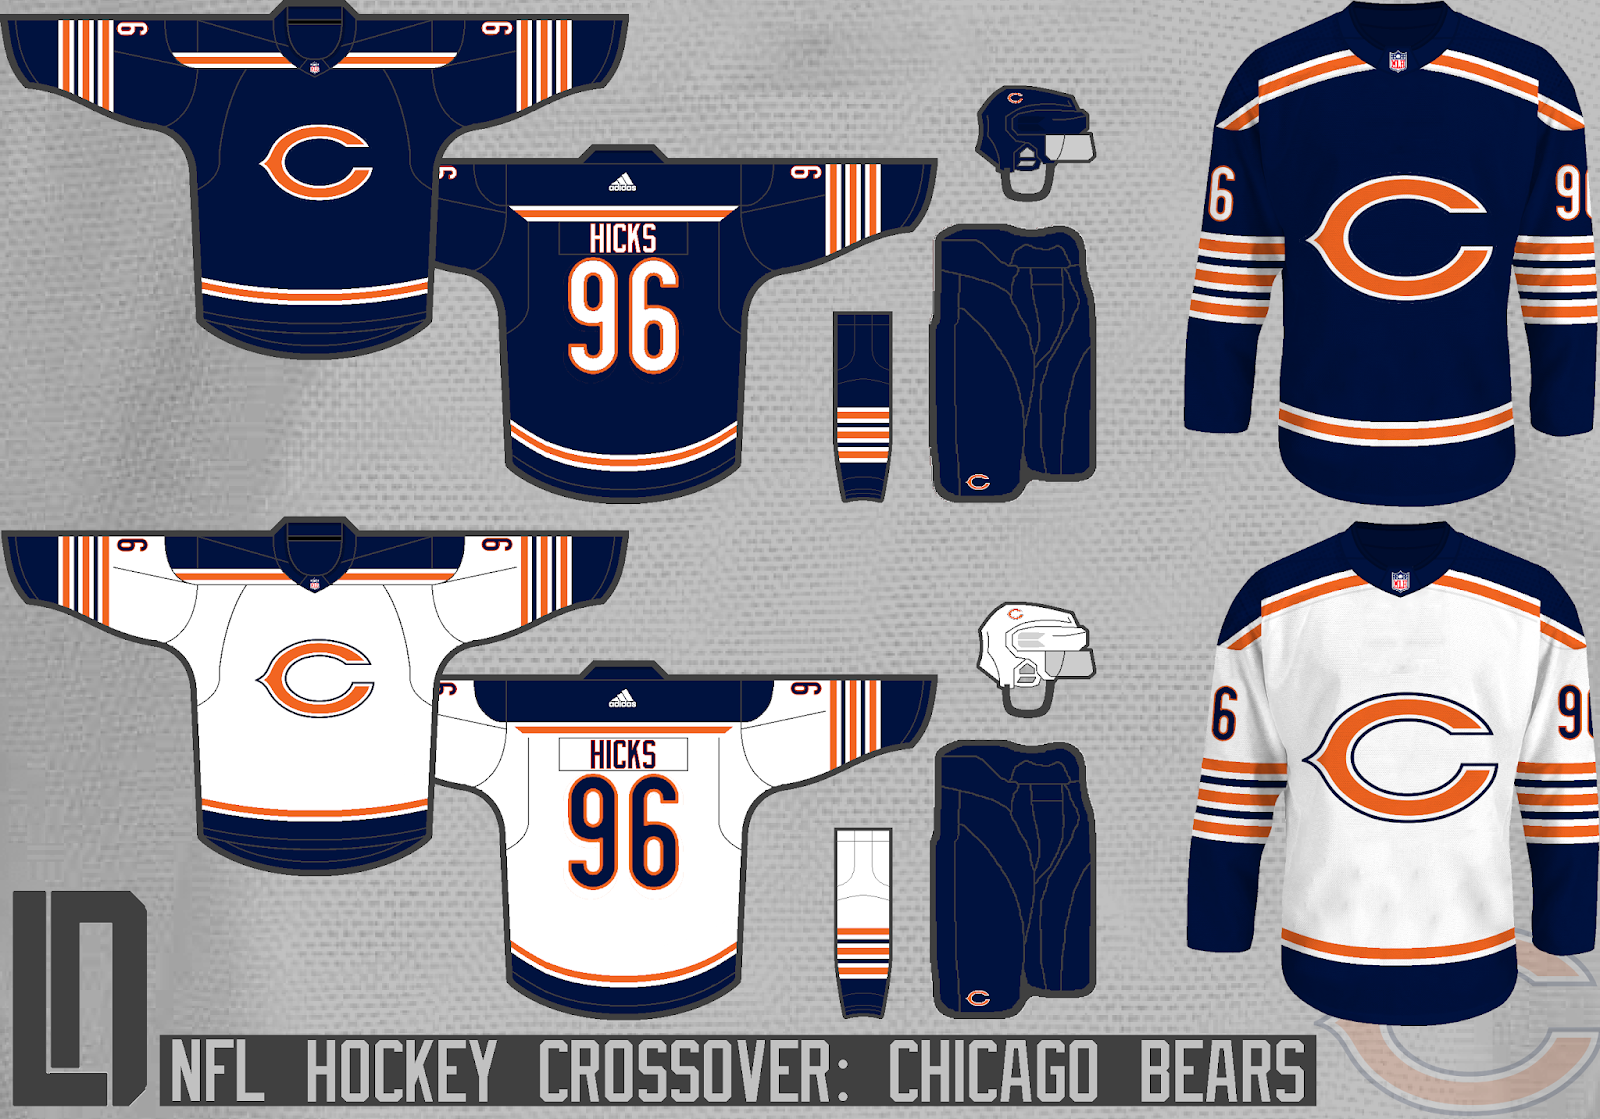 Chicago+Bears+Concept.png